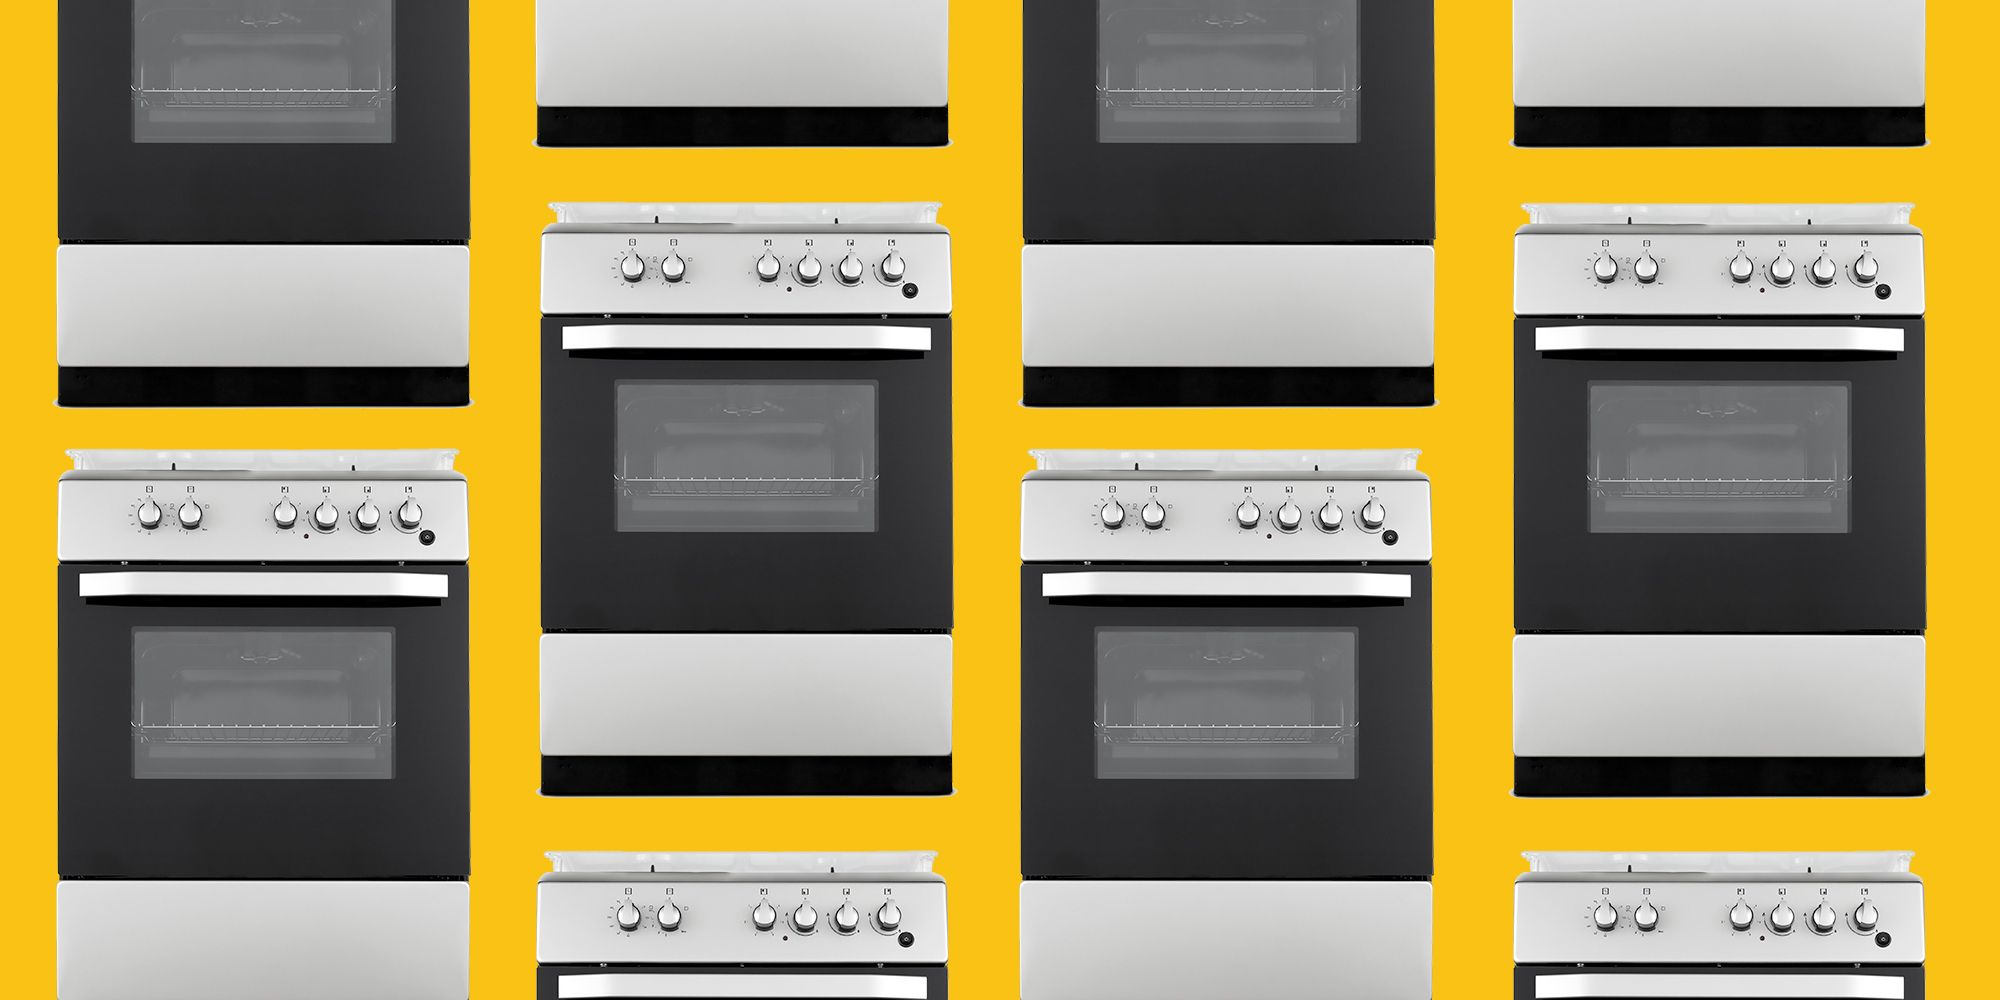 Ovens designed to match your style and